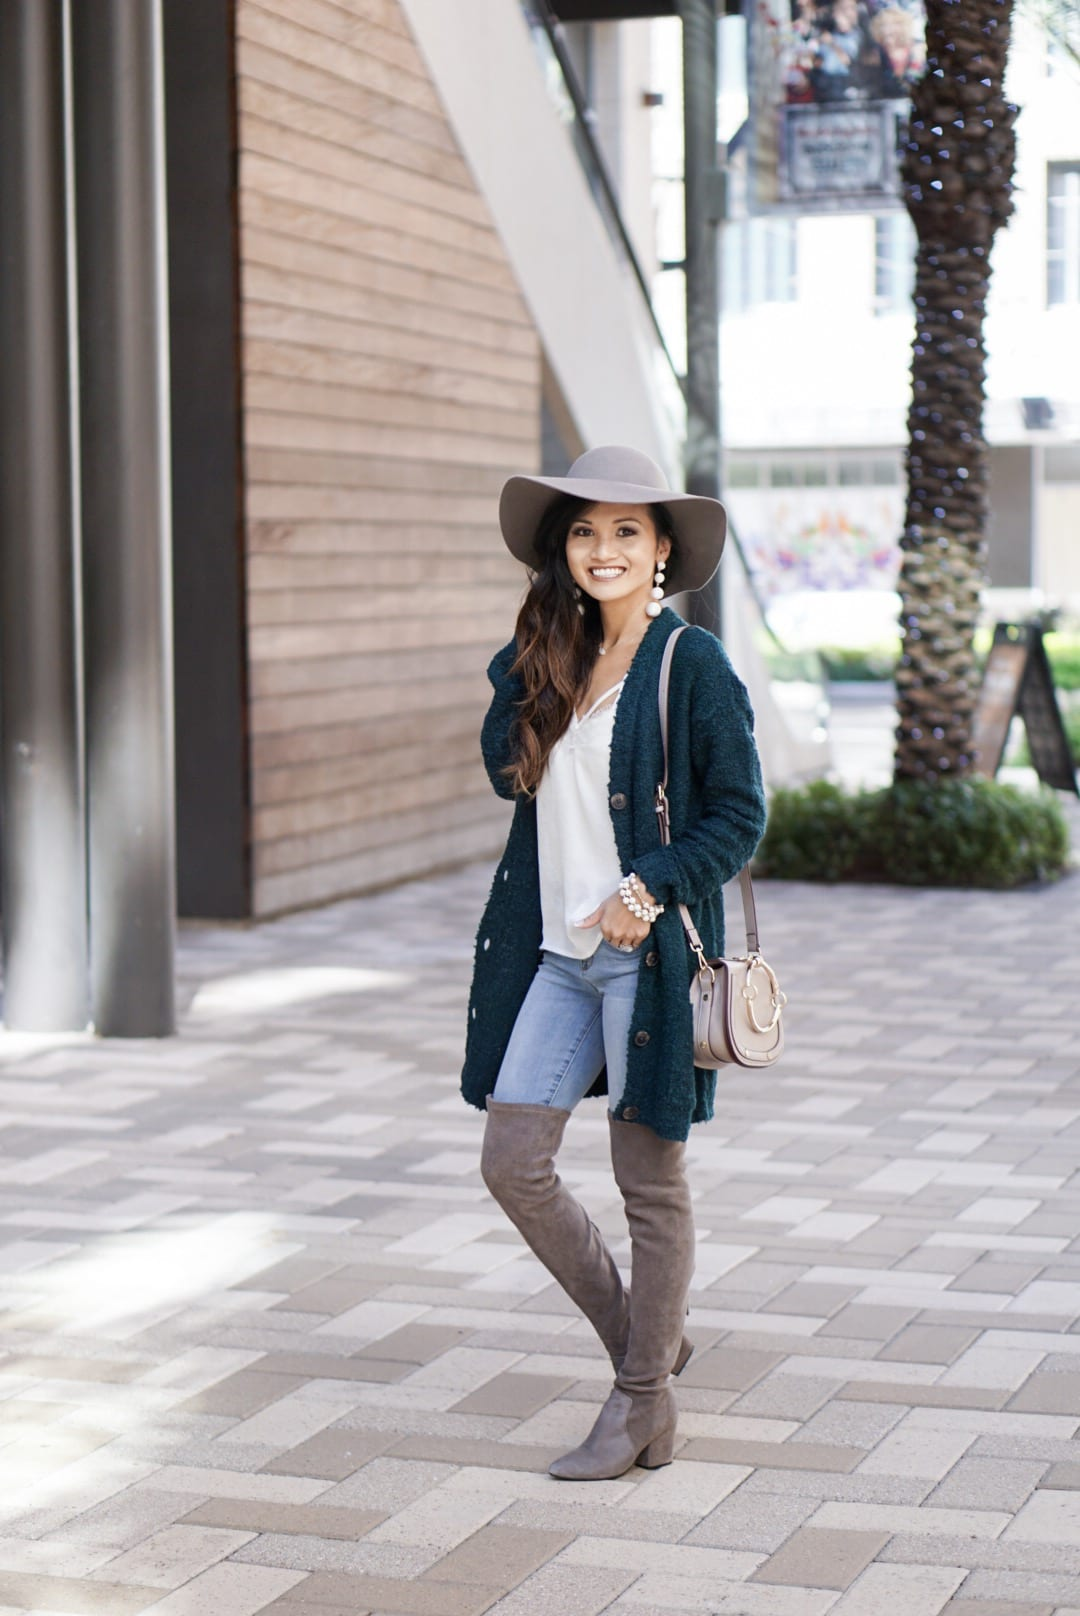 evereve, #dresslikemom, Chloe, amazon, Chloe dupe, mom style, mom fashion, gray floppy hat, gray over the knee boots, white bodysuit, Chloe dupe, mom tribe, mommy and me style